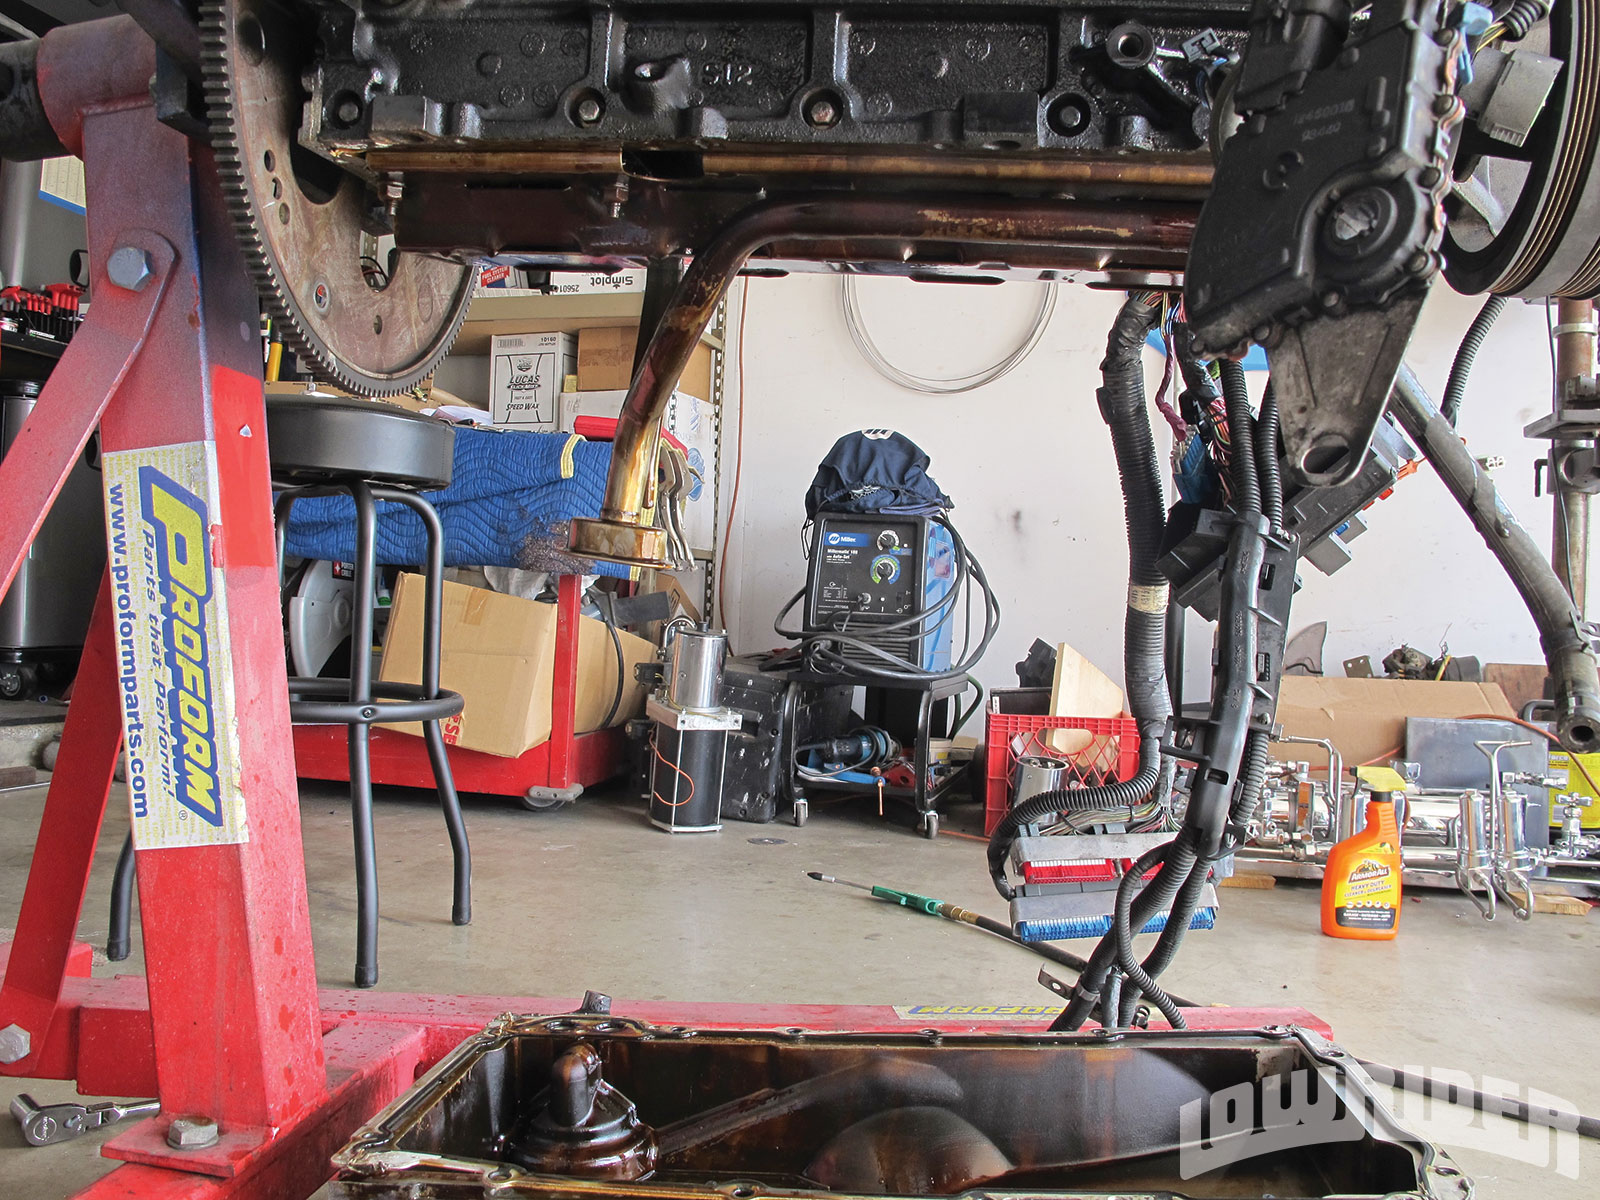 <strong>4</strong>. With this being a Truck/SUV engine, the oil pan hangs a little lower than we needed it to, so we are going to be swapping it out with a lower profile pan that doesn't hang below the frame.